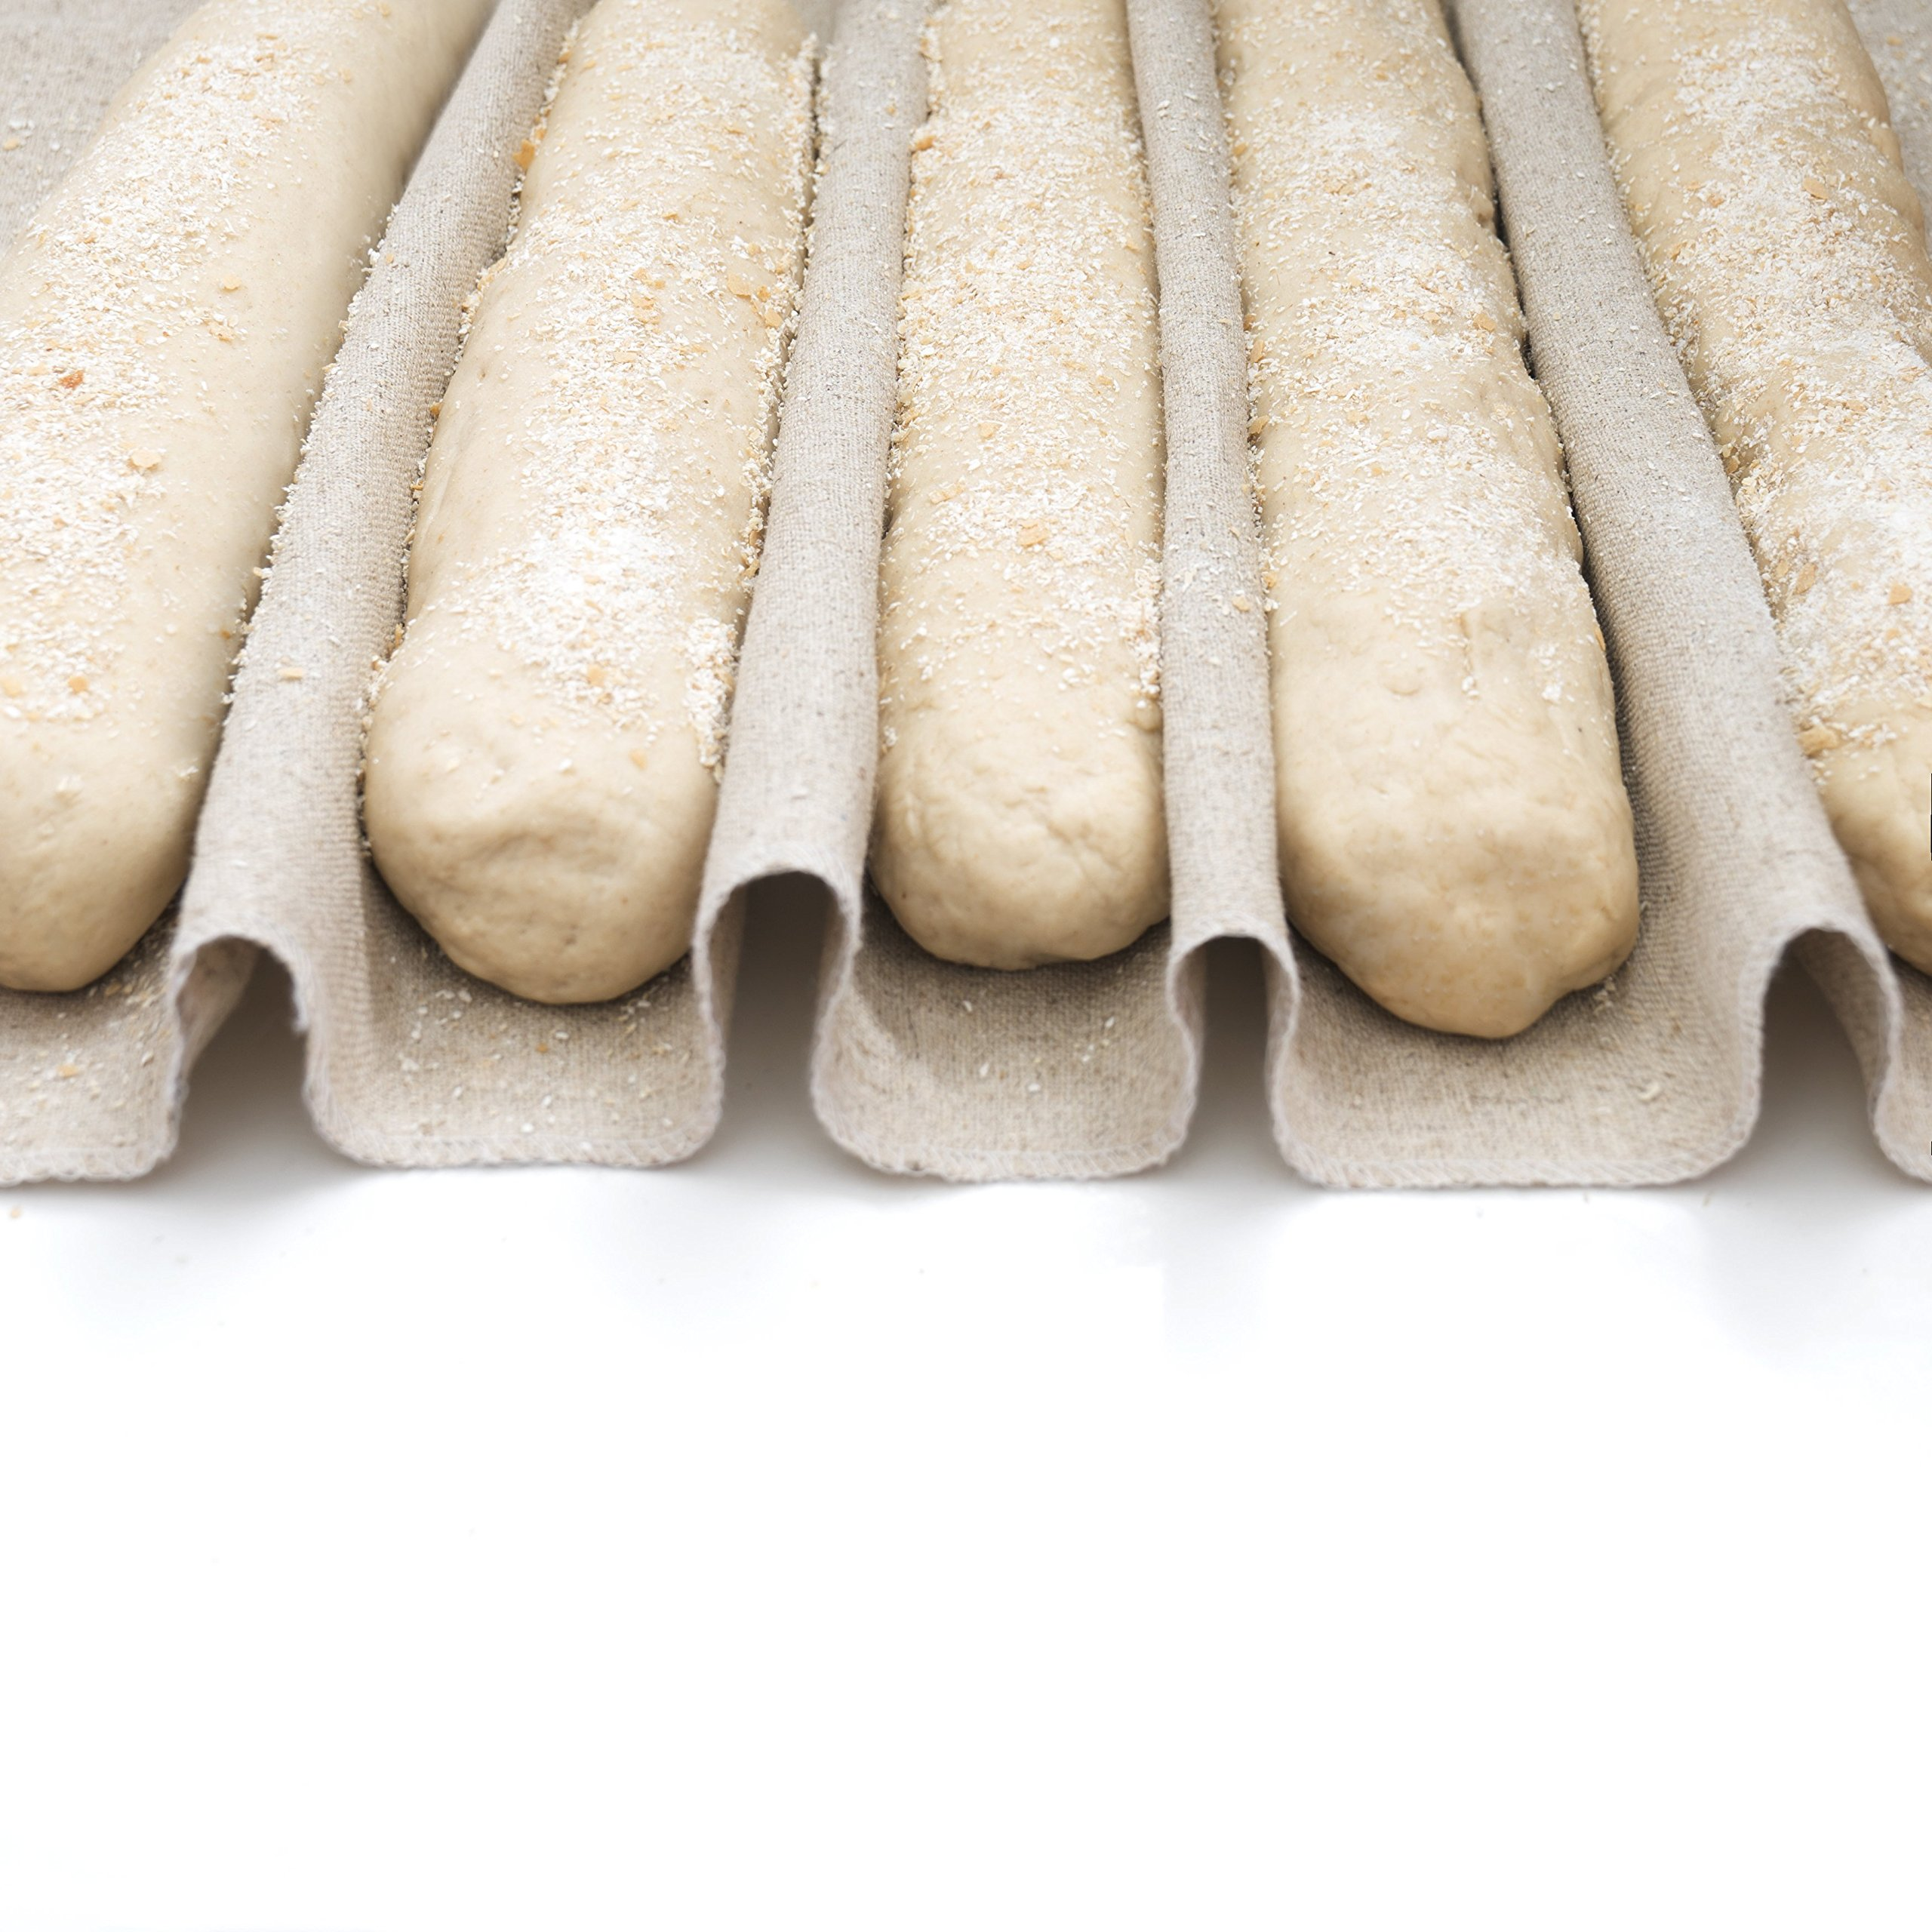 3-In-1 Set of Large Bakers Couche (35''x26'') + Dough Scraper + Linen Storage Bag - Professional Baguette Couche Baking Proofing Cloth - Rolling Dough Proofer Made of 100% Flax Linen Bread Cloche